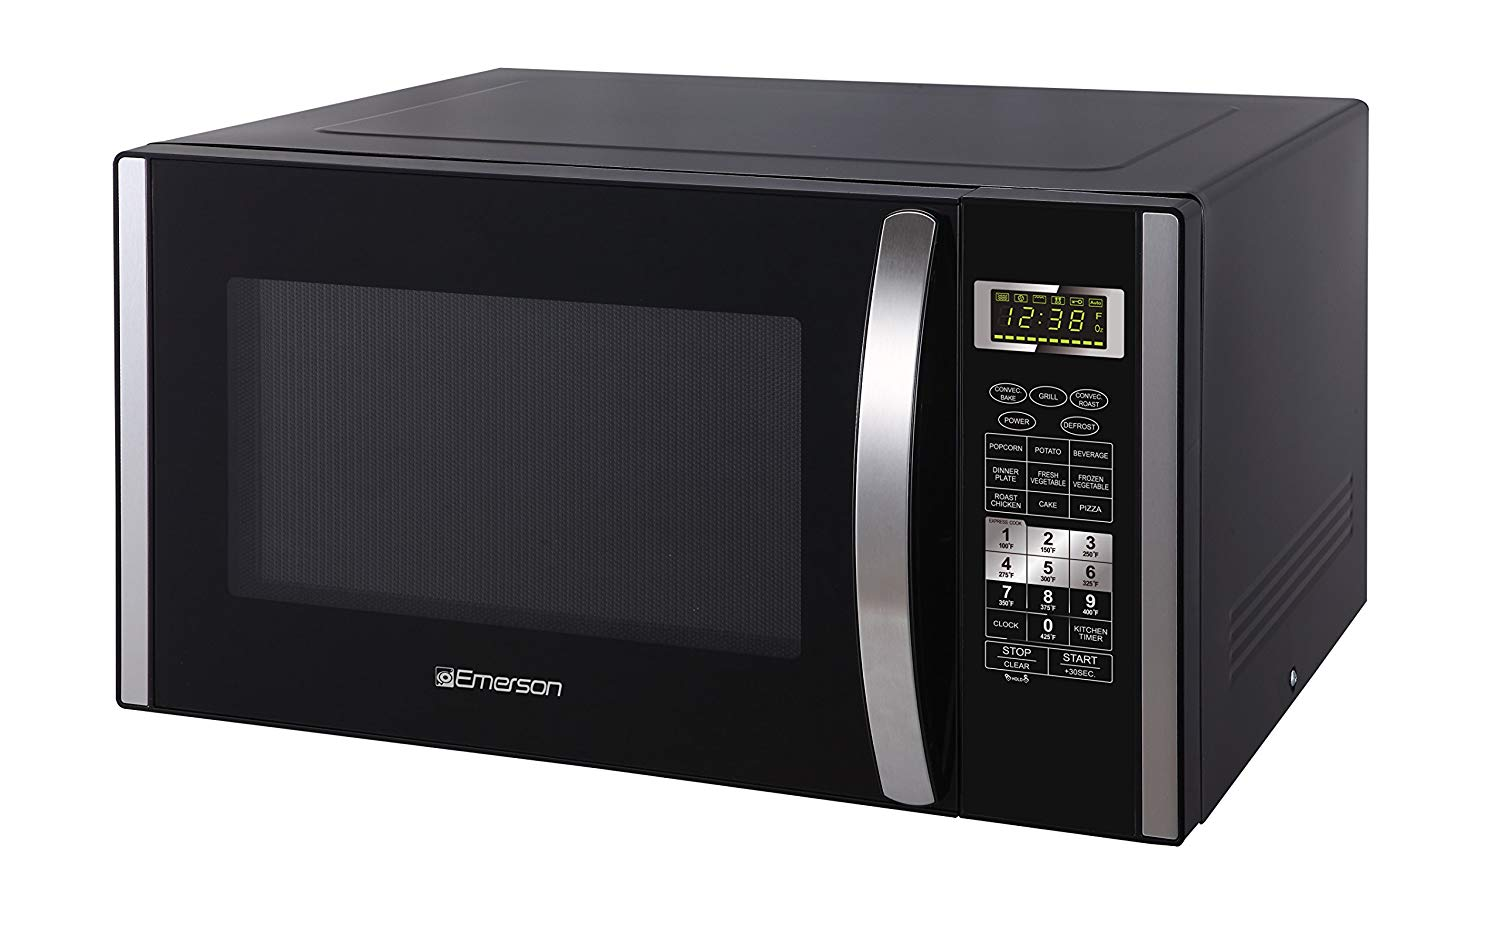 Emerson 1.5 CU. FT. 1000W Convection Microwave Oven​